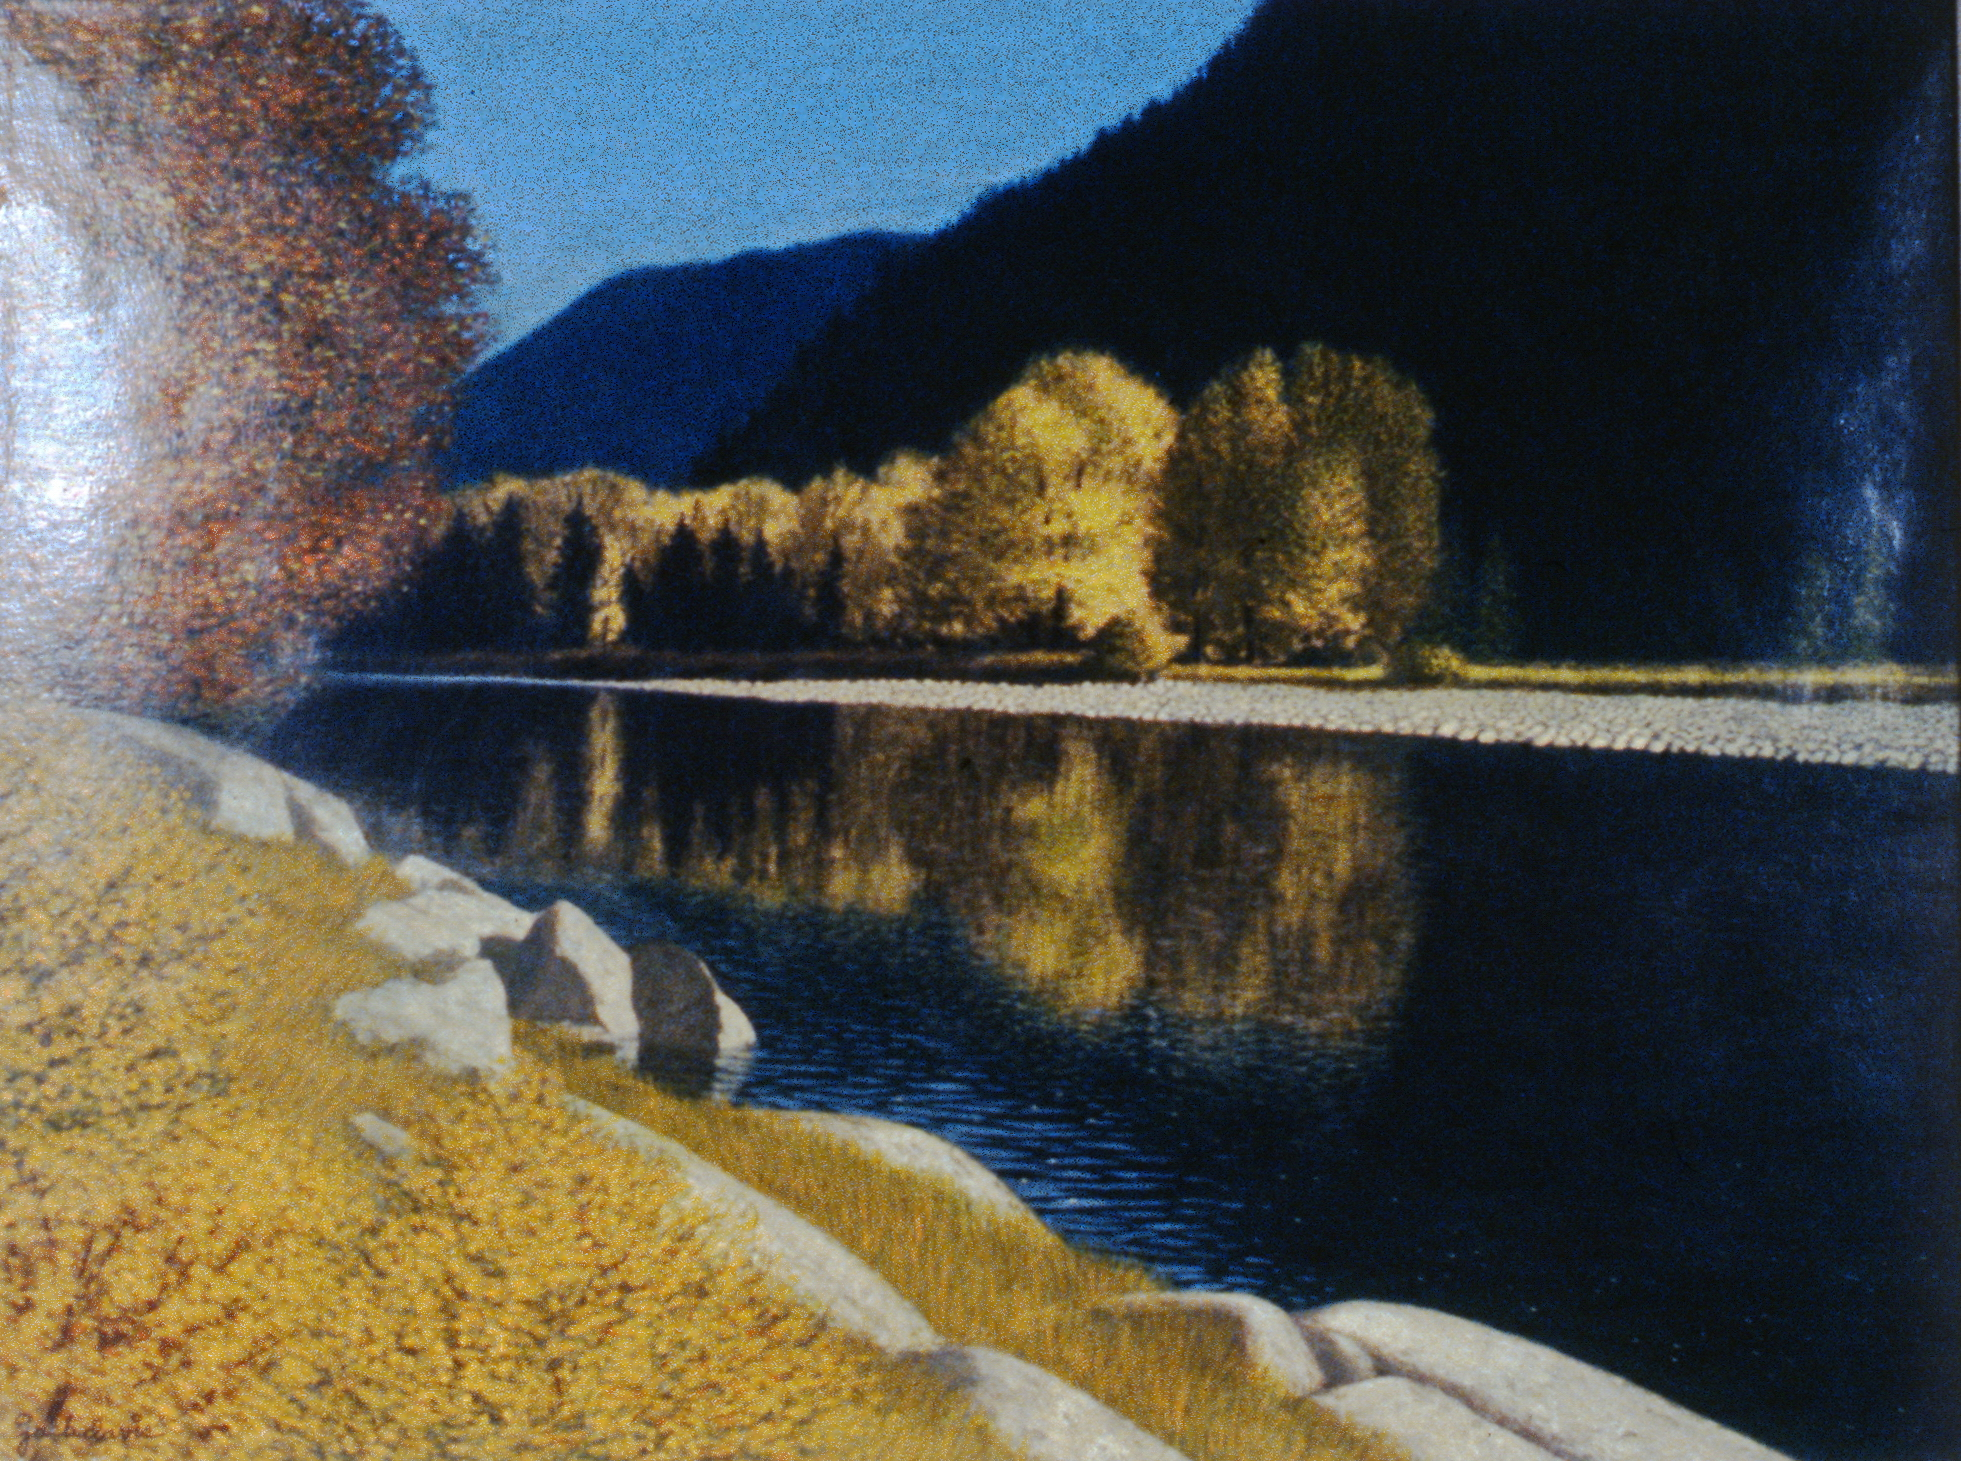 Similkameen , n.d., Jack Davis, acrylic on paper, 44.5 cm x 59.5 cm, 1980.01.02. Gift of the artist.